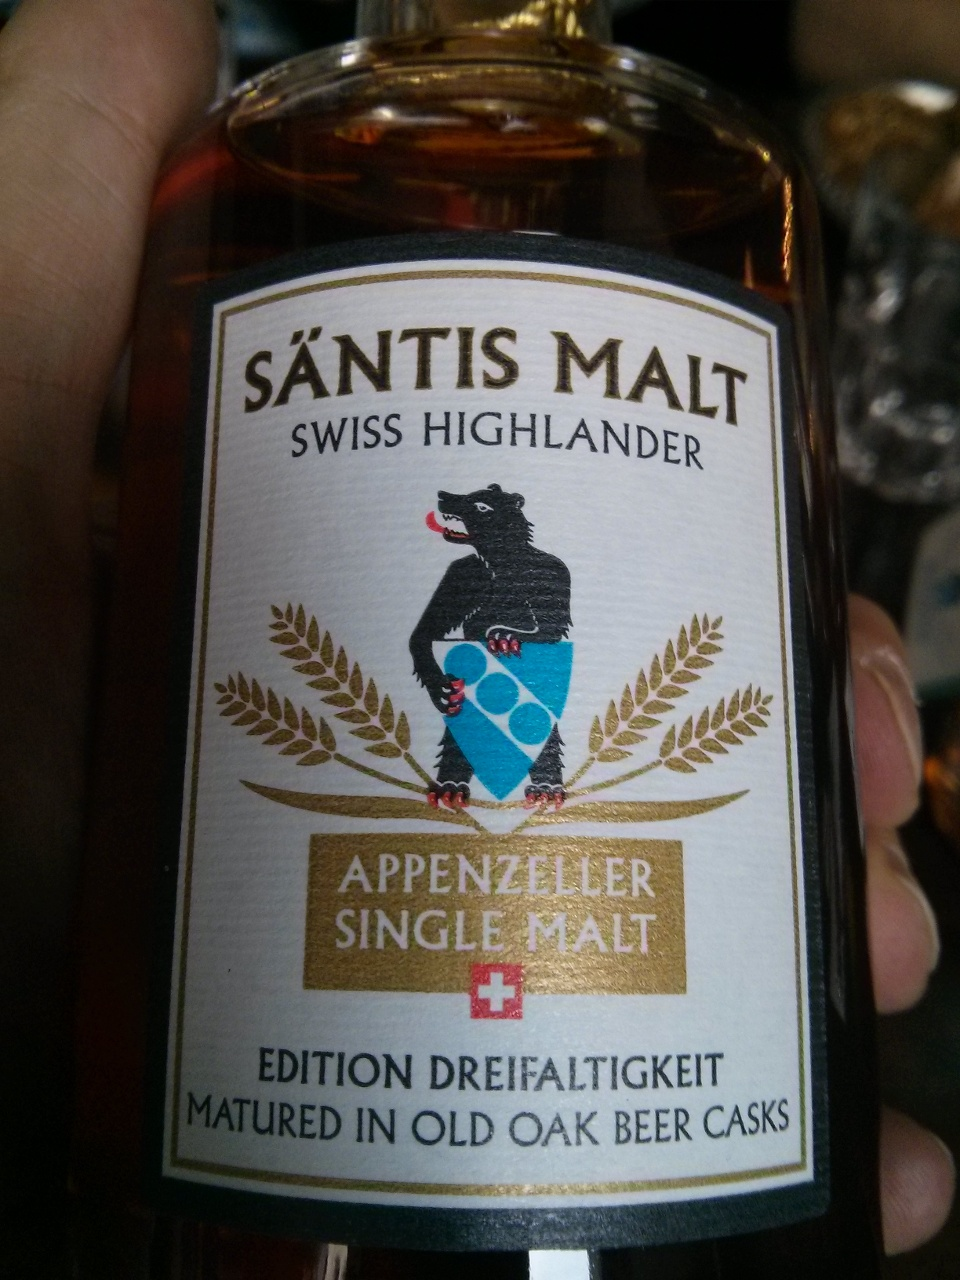 Säntis Appenzeller Single Malt, Edition Dreifaltigkeit